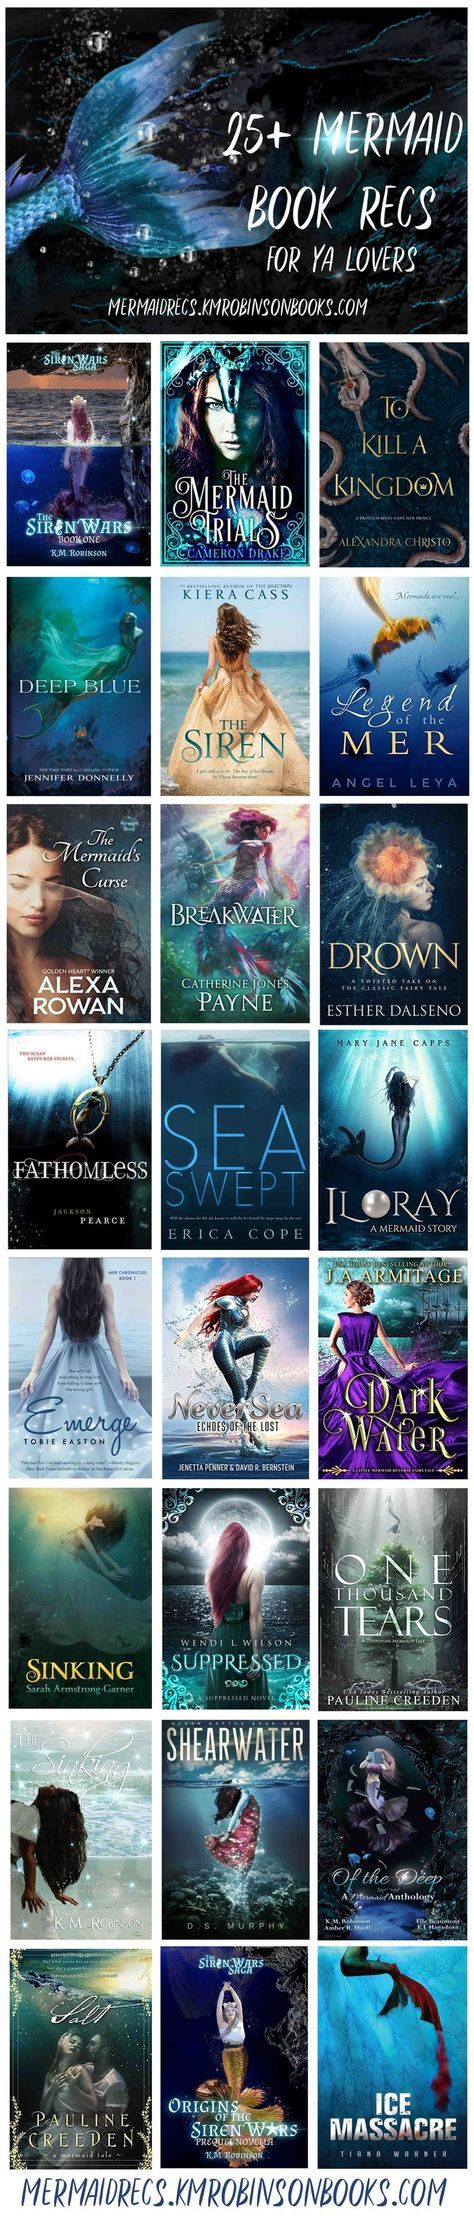 25 Mermaid Young Adult Book Recommendations The Full